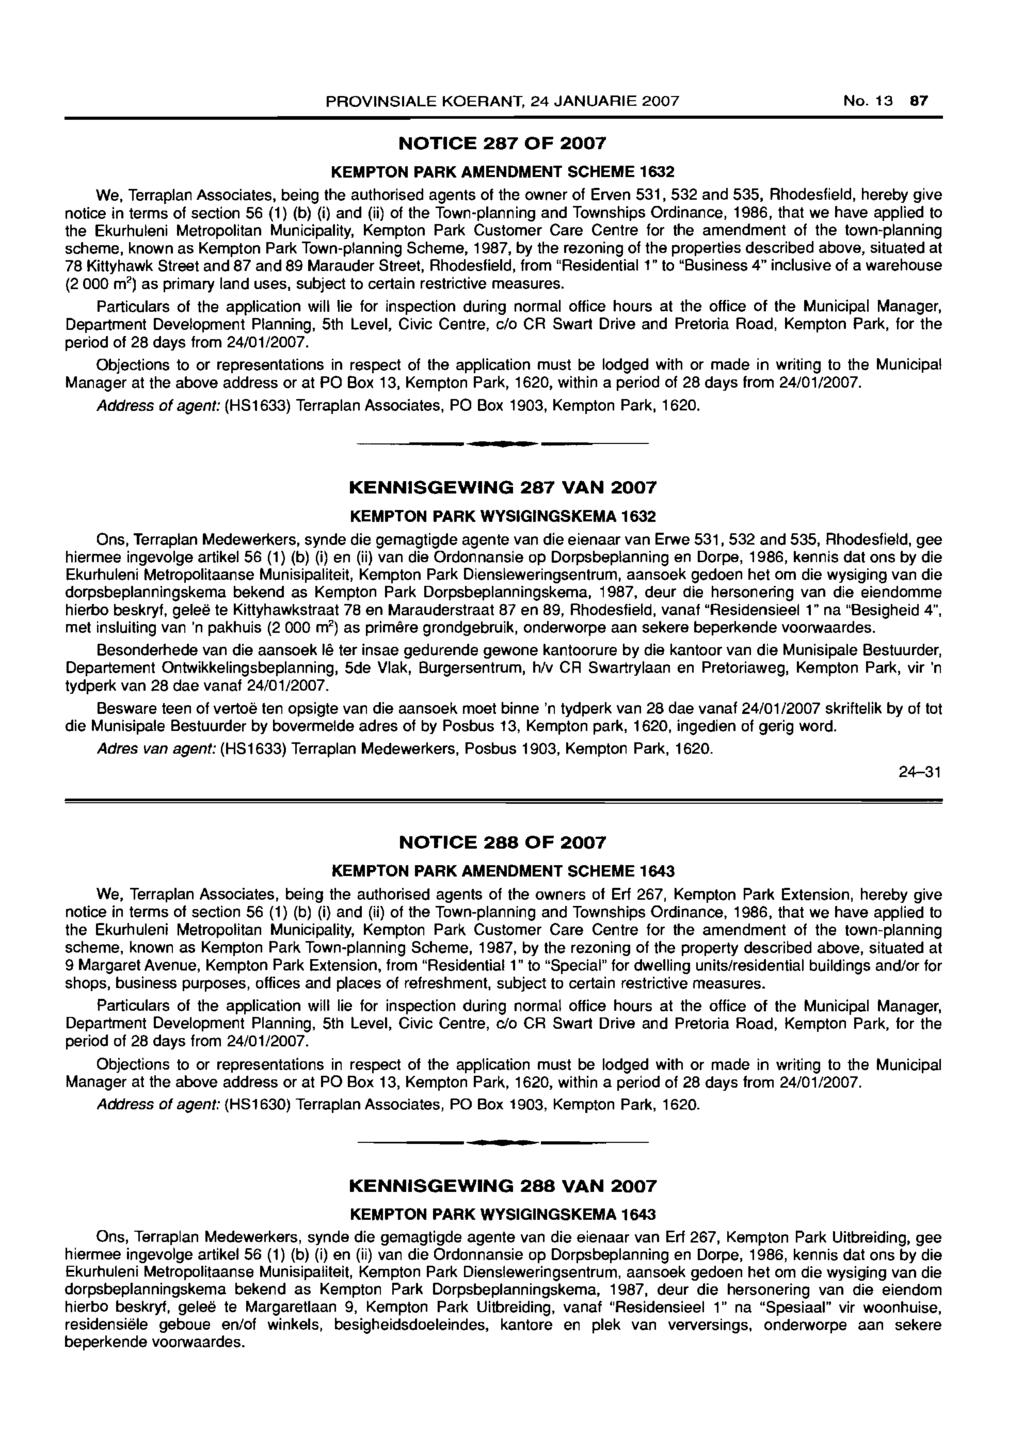 PROVINSIALE KOERANT. 24 JANUARIE 2007 No. 13 87 NOTICE 287 OF 2007 KEMPTON PARK AMENDMENT SCHEME 1632 We. Terraplan Associates, being the authorised agents of the owner of Erven 531.